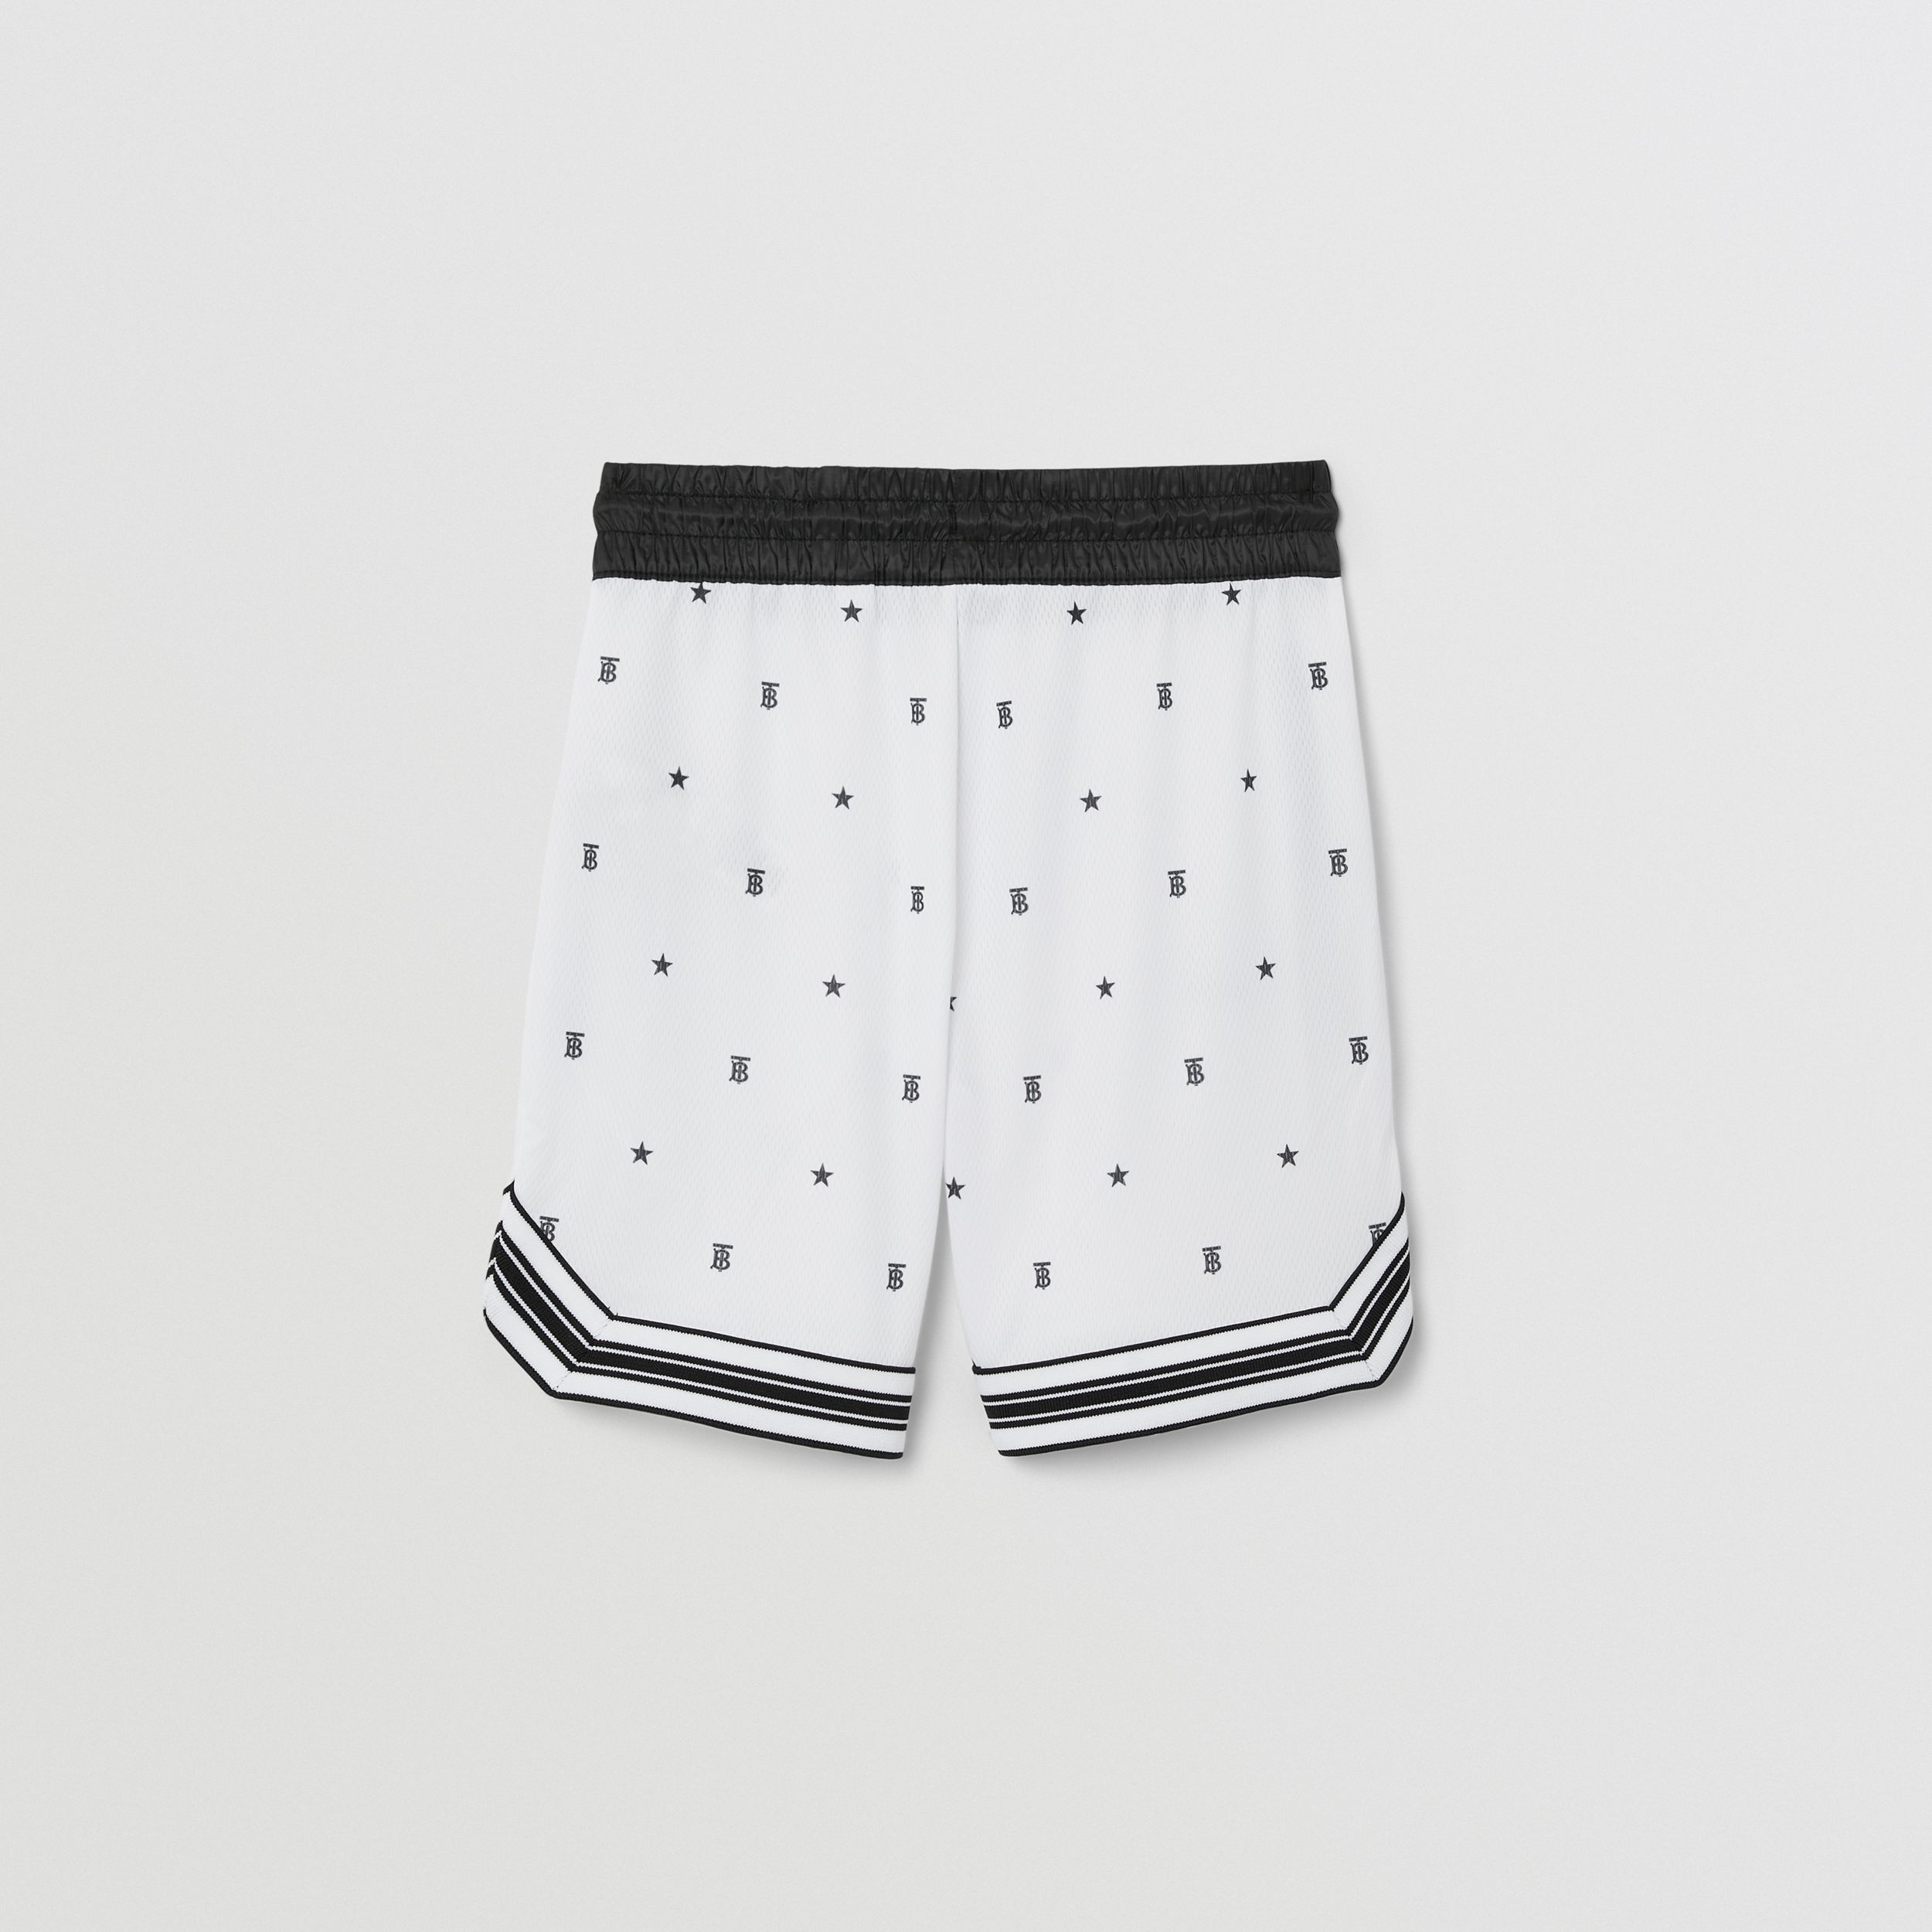 Star and Monogram Motif Jersey Mesh Shorts in Black | Burberry - 4